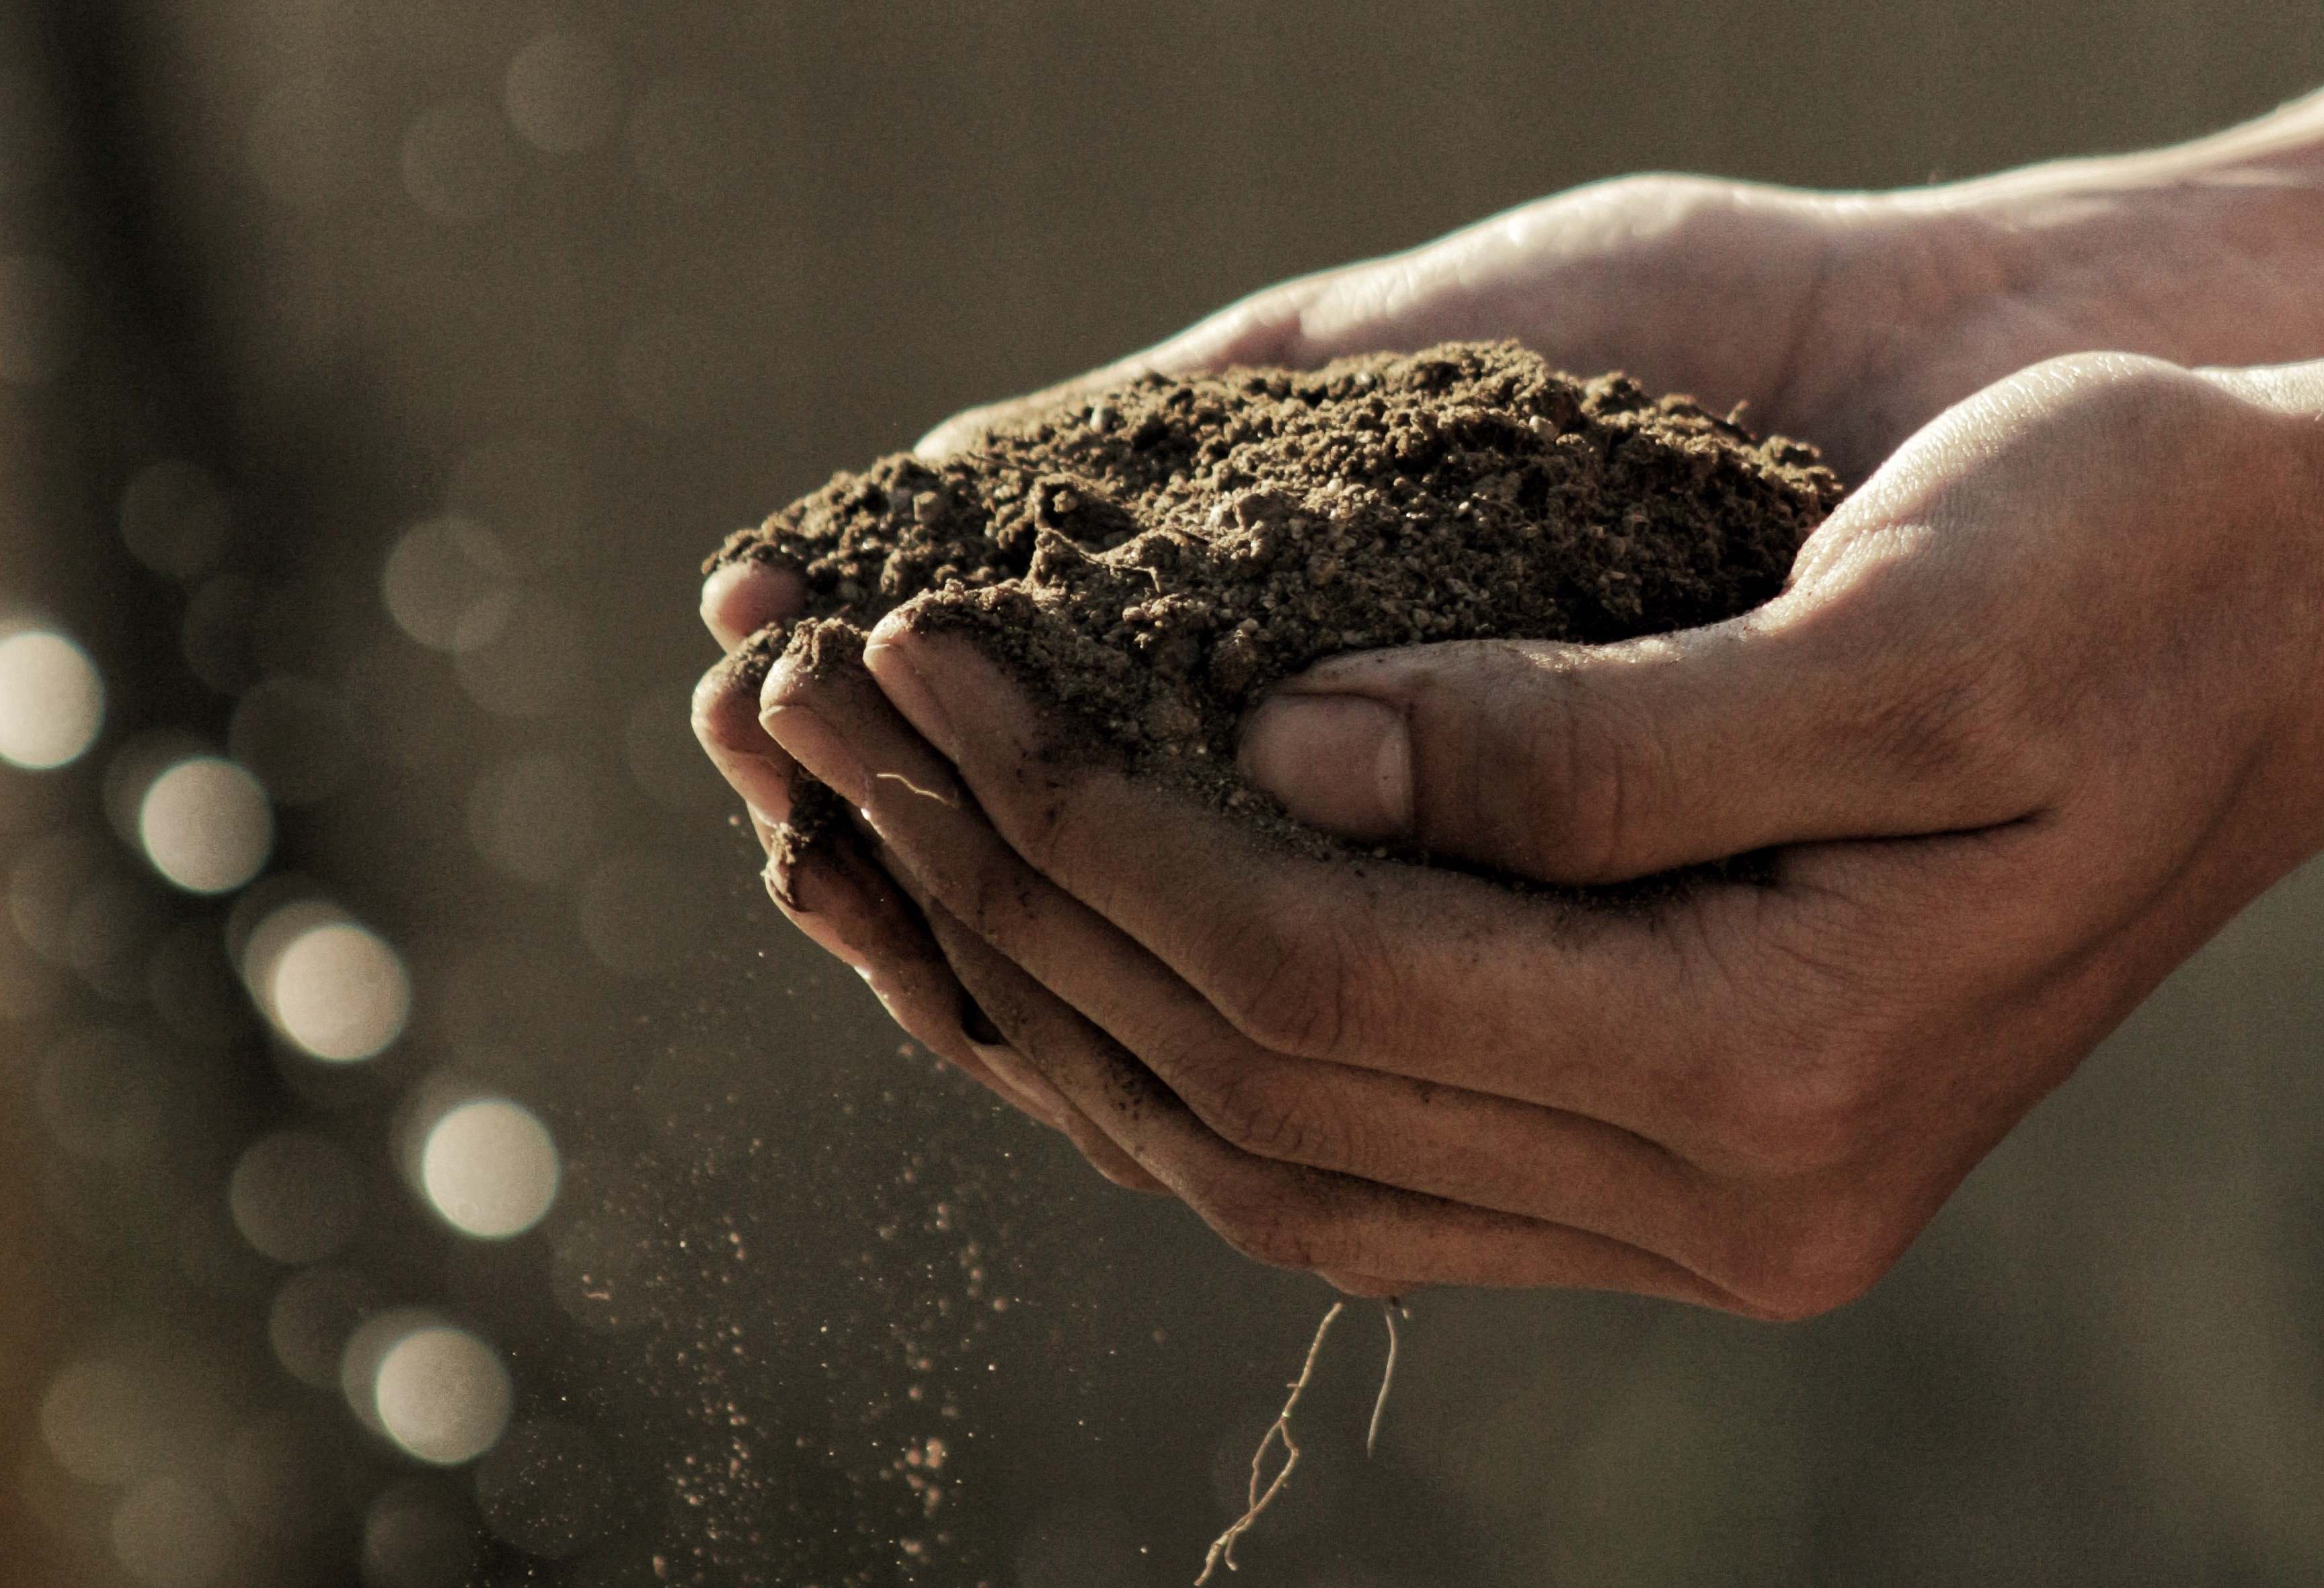 A pair of dirty hands cupping a mound of soil against a bokeh brown background